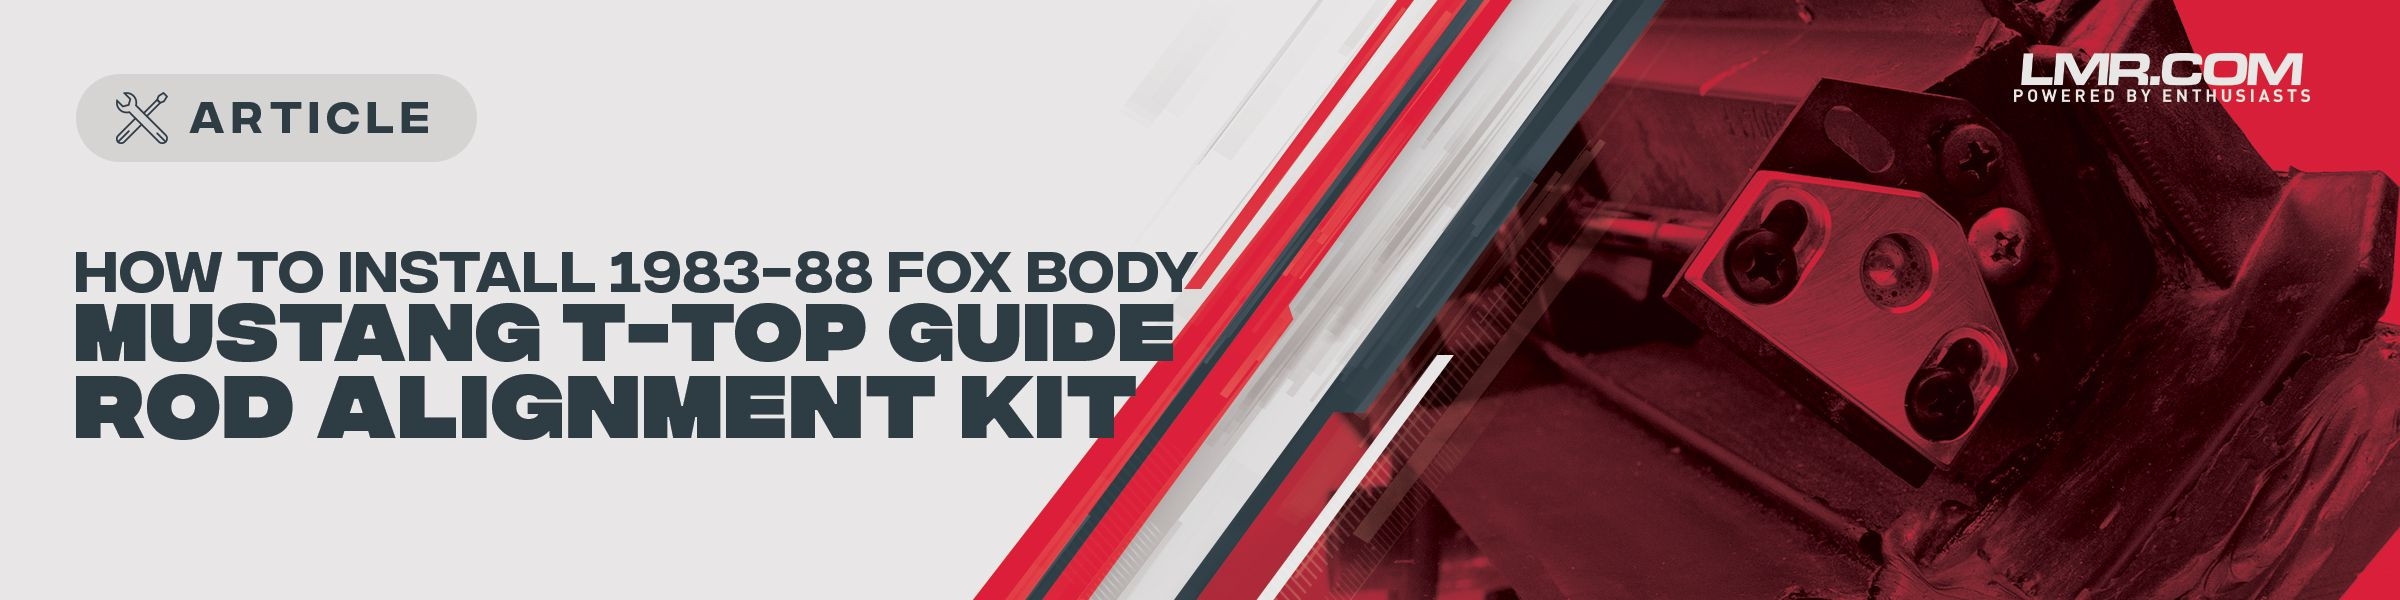 How To Install Fox Body Mustang T-Top Guide Rod Alignment Kit | 83-88 - How To Install Fox Body Mustang T-Top Guide Rod Alignment Kit | 83-88